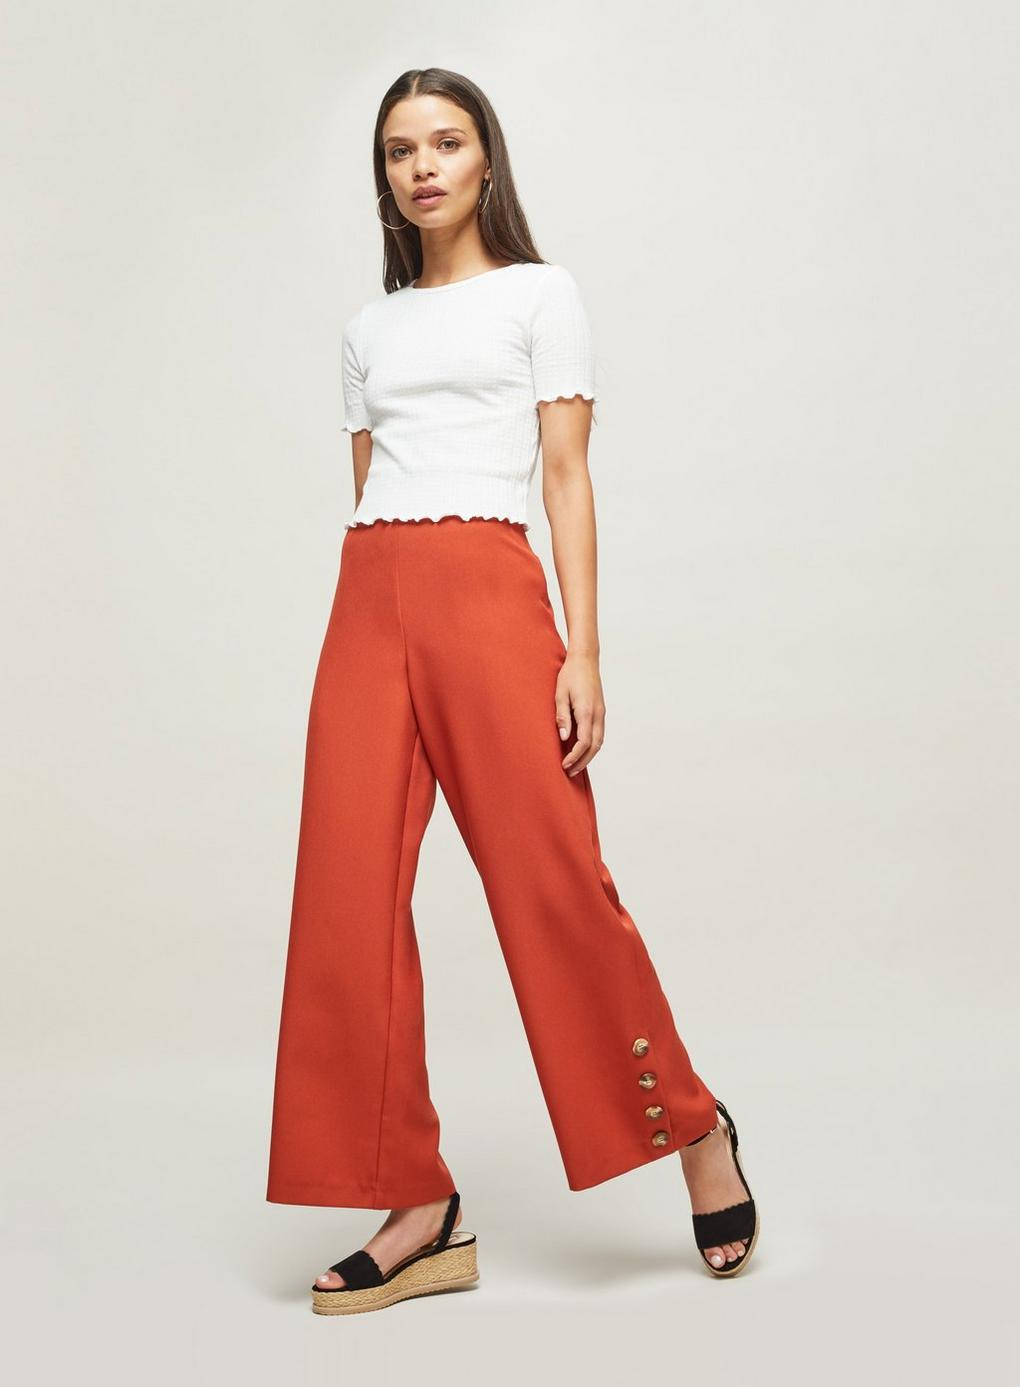 44a1fe9526246 Miss Selfridge Petite Rust Wide Leg Trousers in Red - Lyst